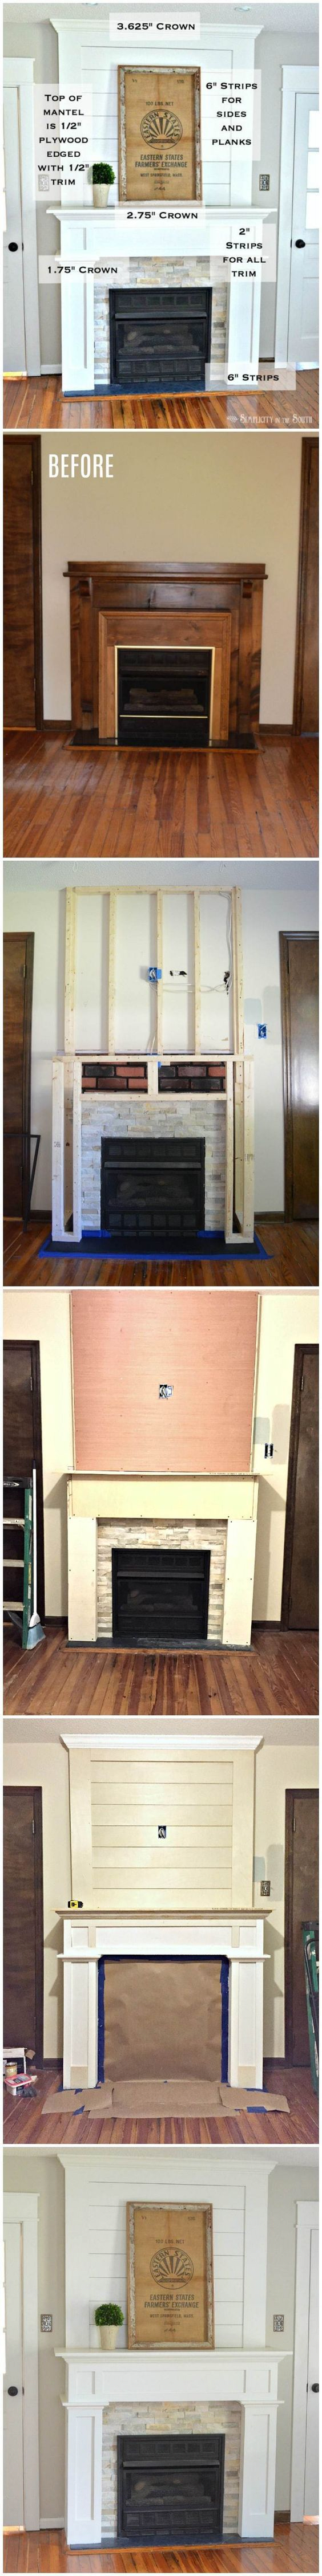 53 best fireplace images on pinterest fireplace remodel